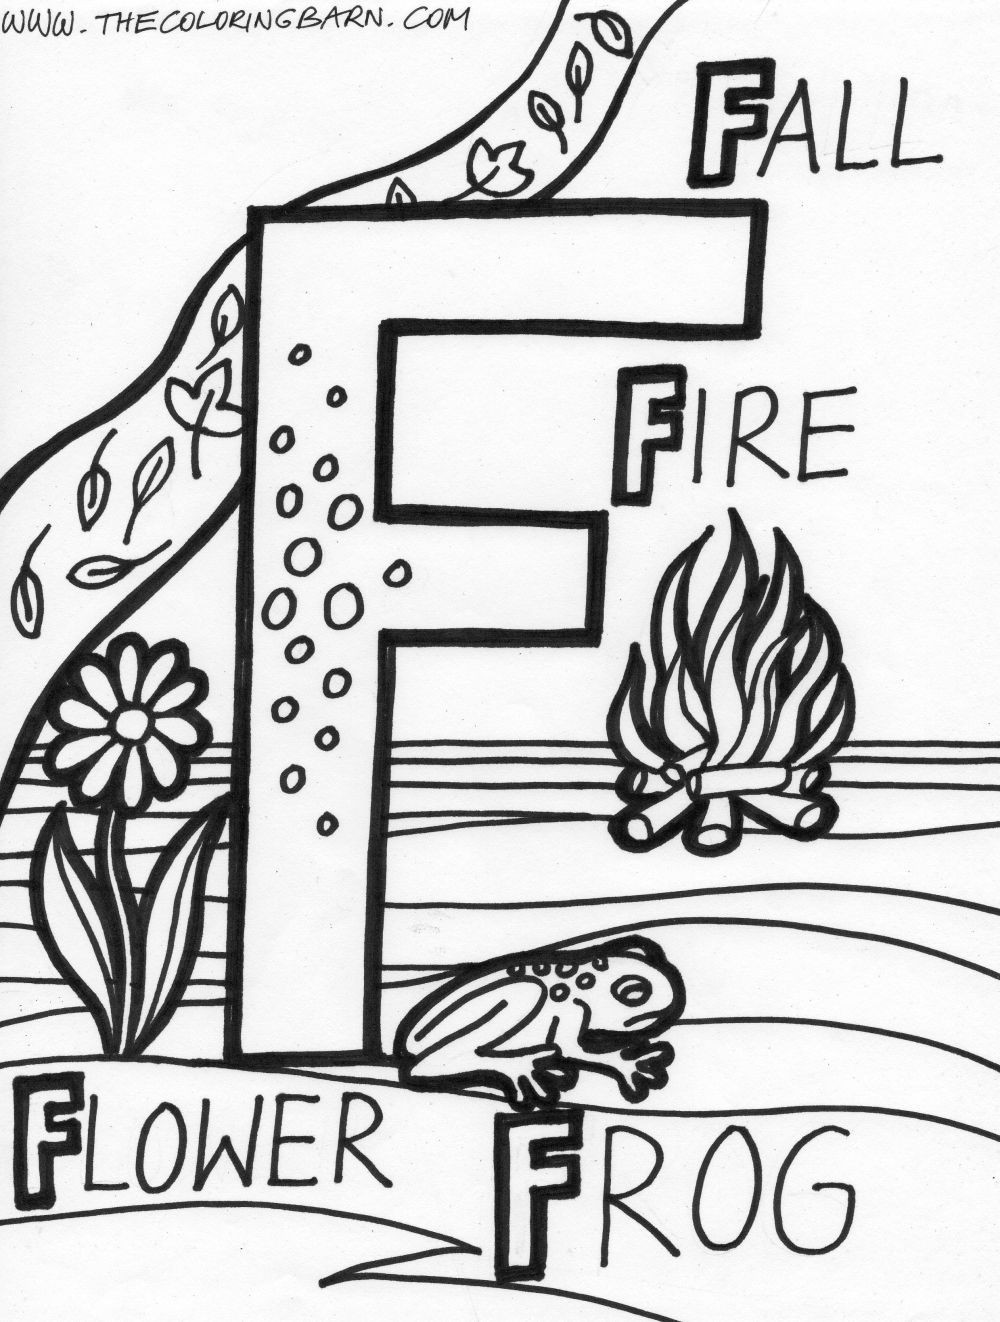 1000x1322 F For Fall Fire Flower Frog Alphabet Adorable Coloring